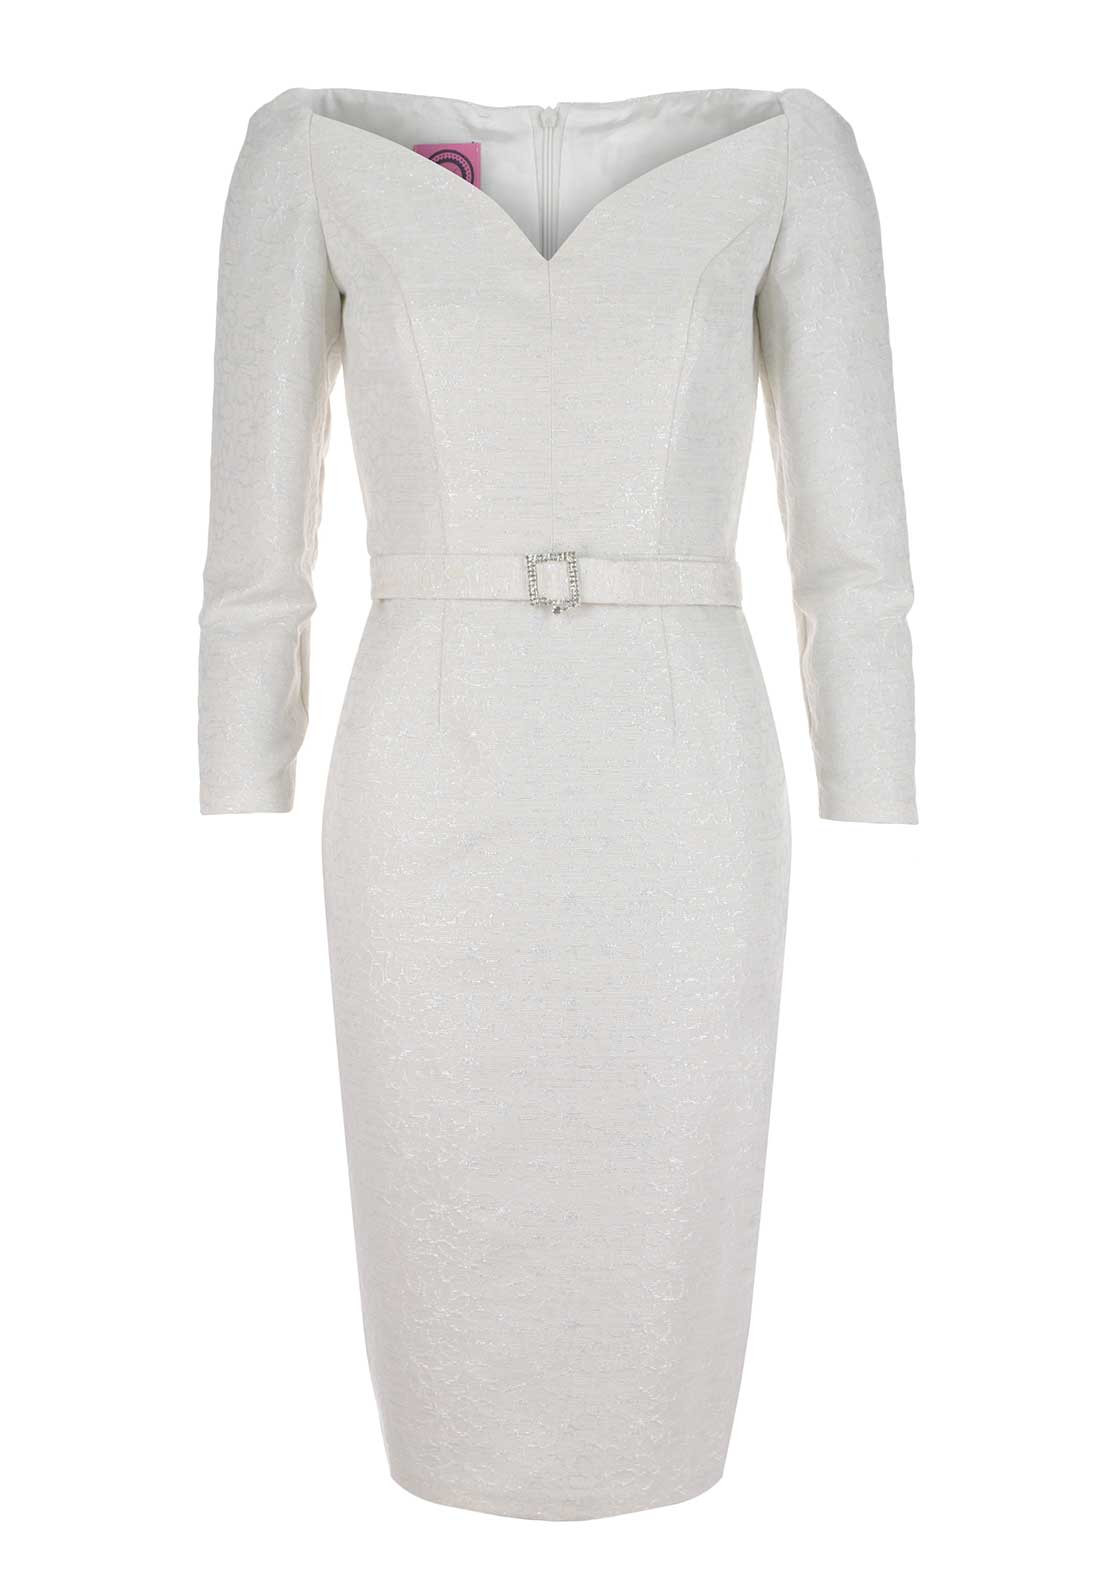 Anoola Textured Sweetheart Neck Dress, Ivory